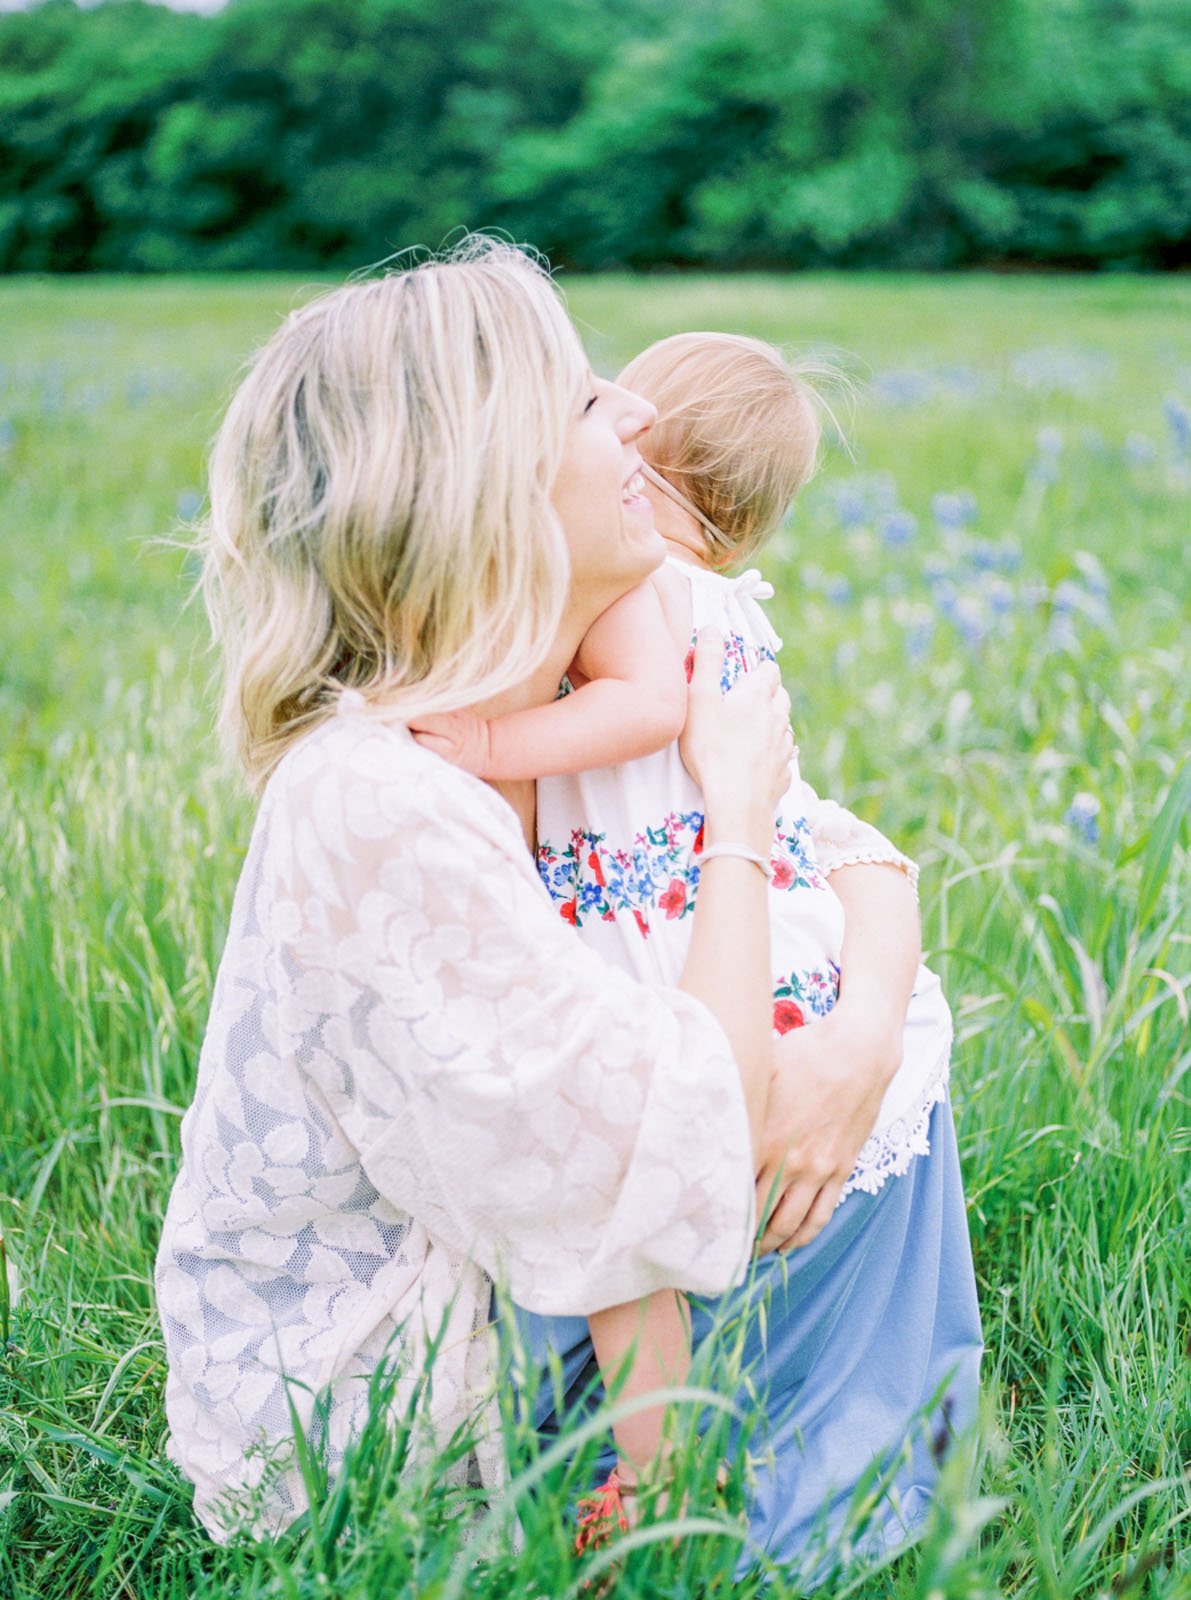 outdoor bluebonnet photos of mom and daughter in Texas by Lauren Brandon